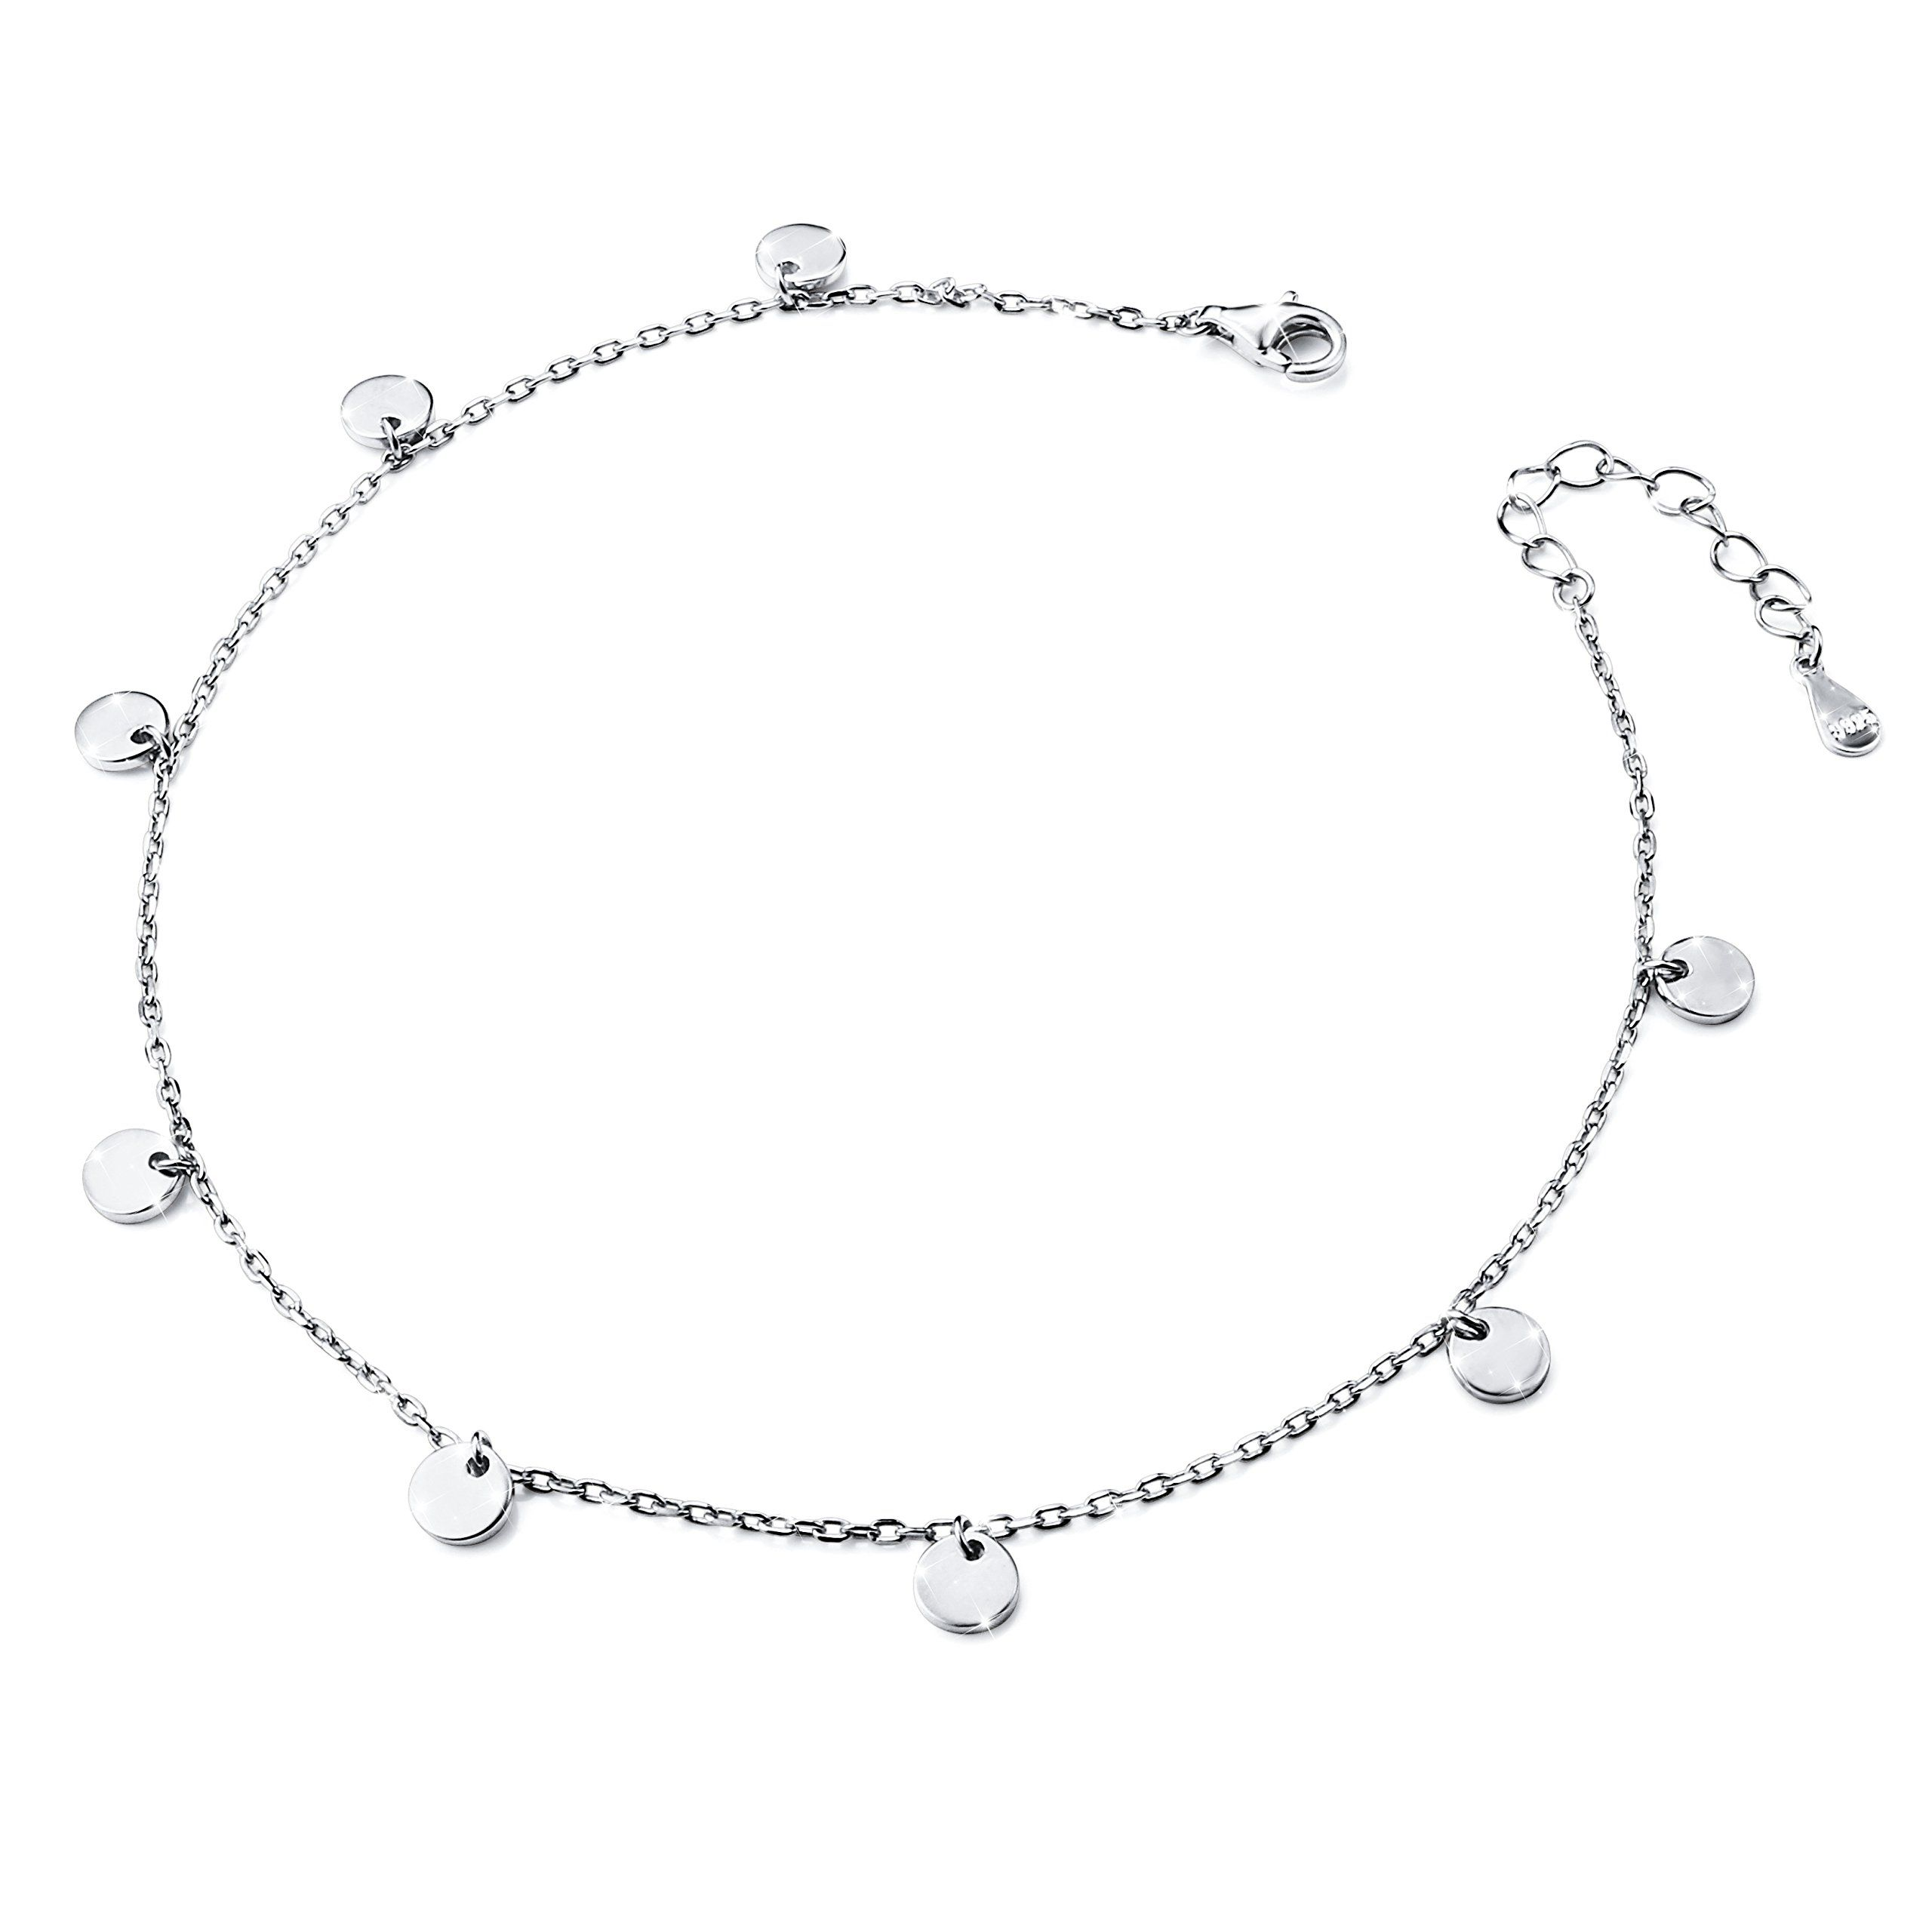 free for product silver stonez anklets on shipping overstock icz ladies sterling watches jewelry flop flip zirconia cubic orders over anklet